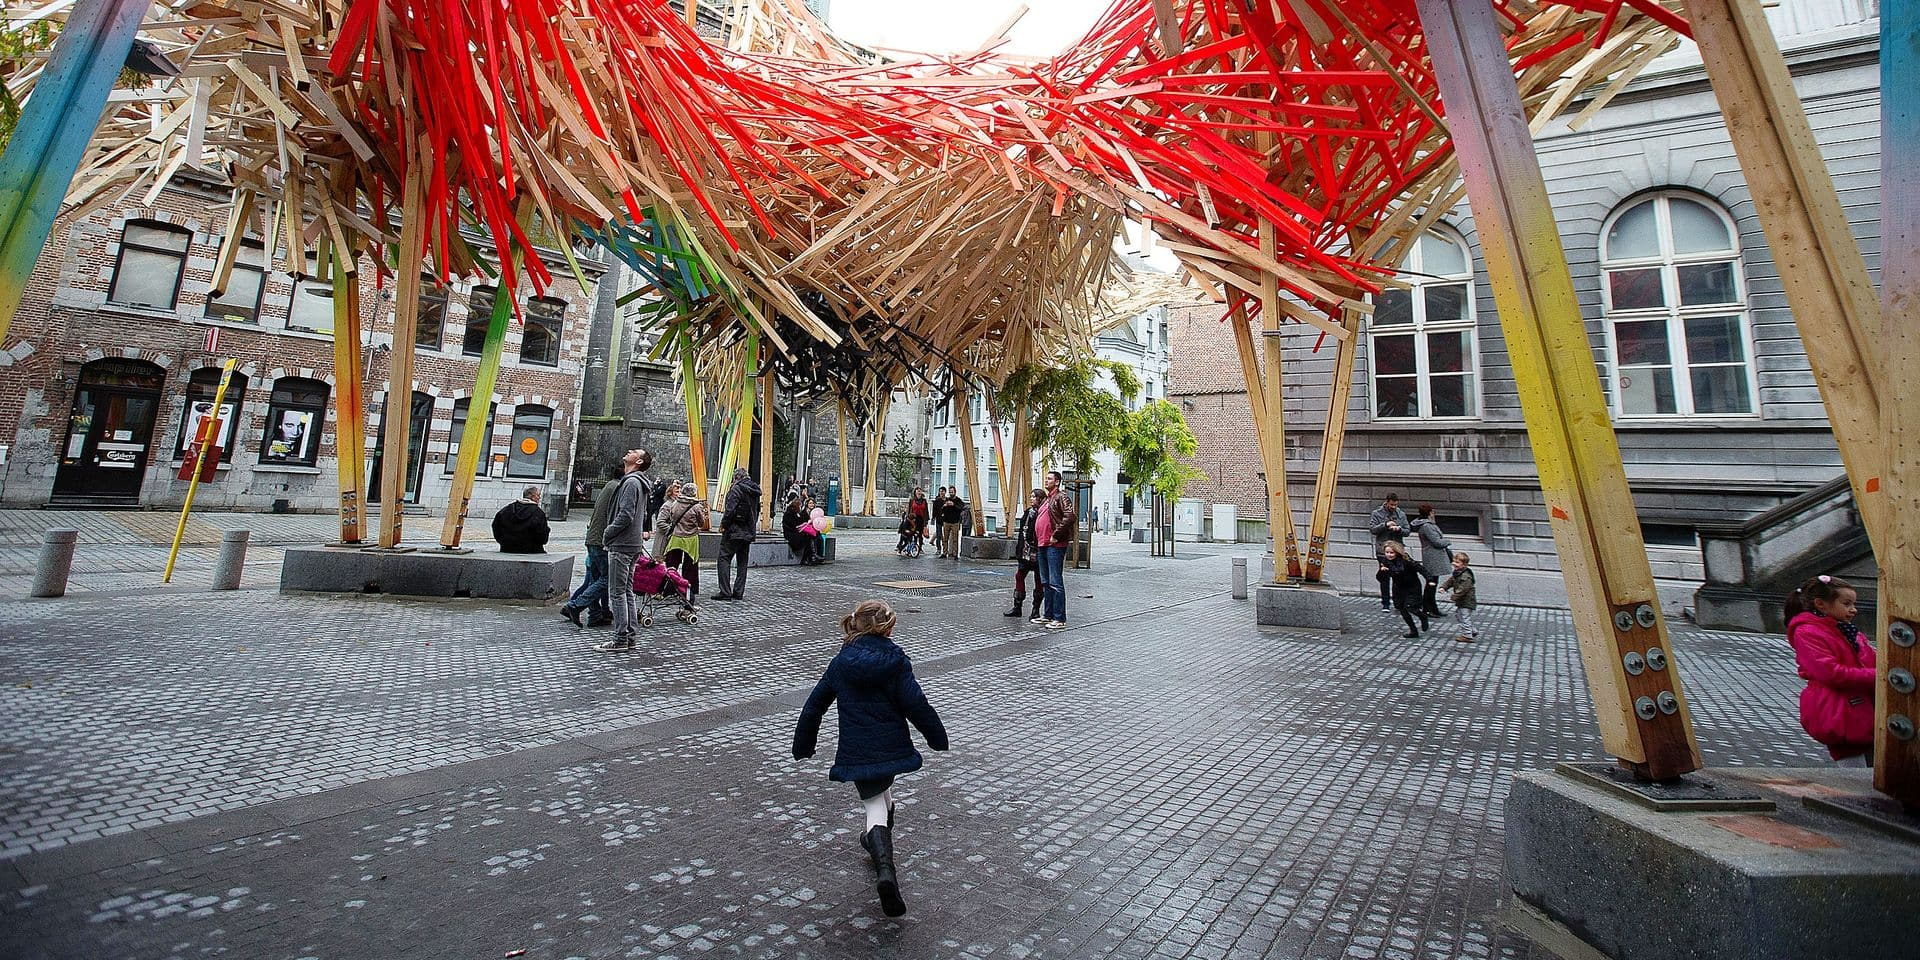 20151017 - MONS, BELGIUM: Illustration shows the new 'The Passenger', a sculpture of Flemish artist Arne Quinze, on Saturday 17 October 2015, in Mons city center. In January 2015, the first sculpture was completely disassembled, after part of it collapsed for the second time. The sculpture cost 400,000 euros and was supposed to stay for several years as a symbol of Mons 2015, cultural capital. BELGA PHOTO NICOLAS MAETERLINCK